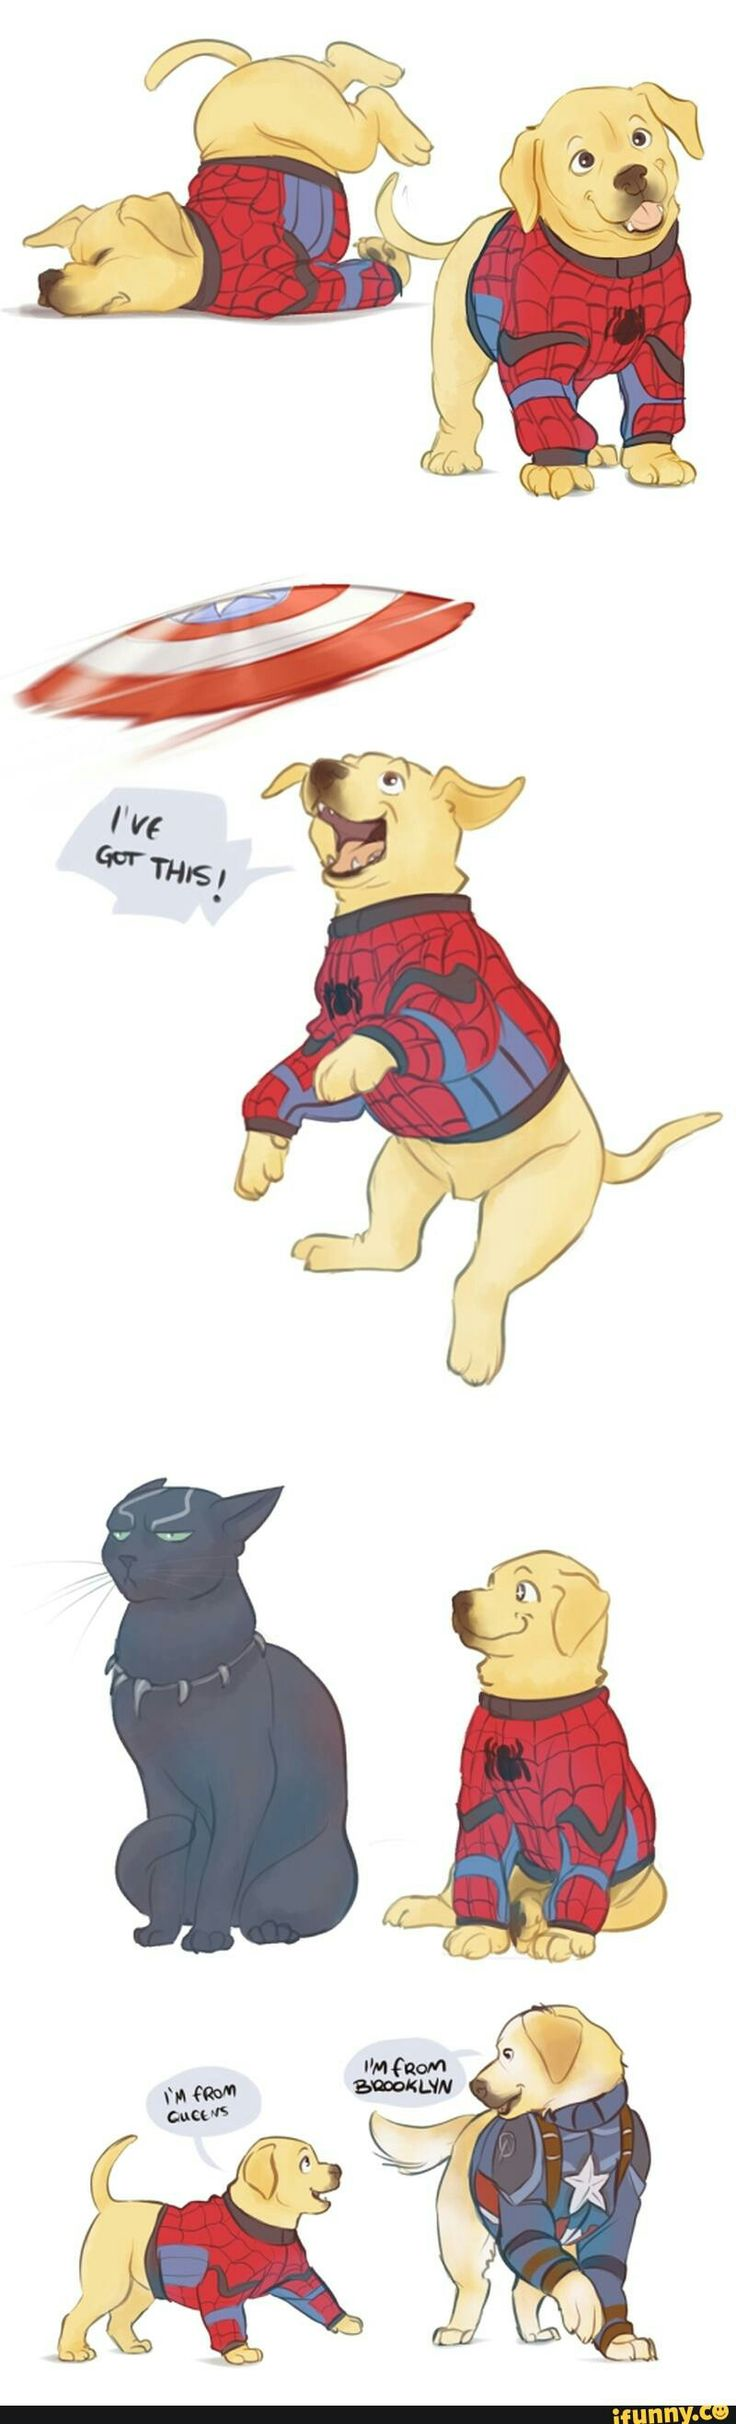 I don't think Golden Retriever suits Peter. Maybe something else...<<he's not a retriever, he's a lab. And it fits